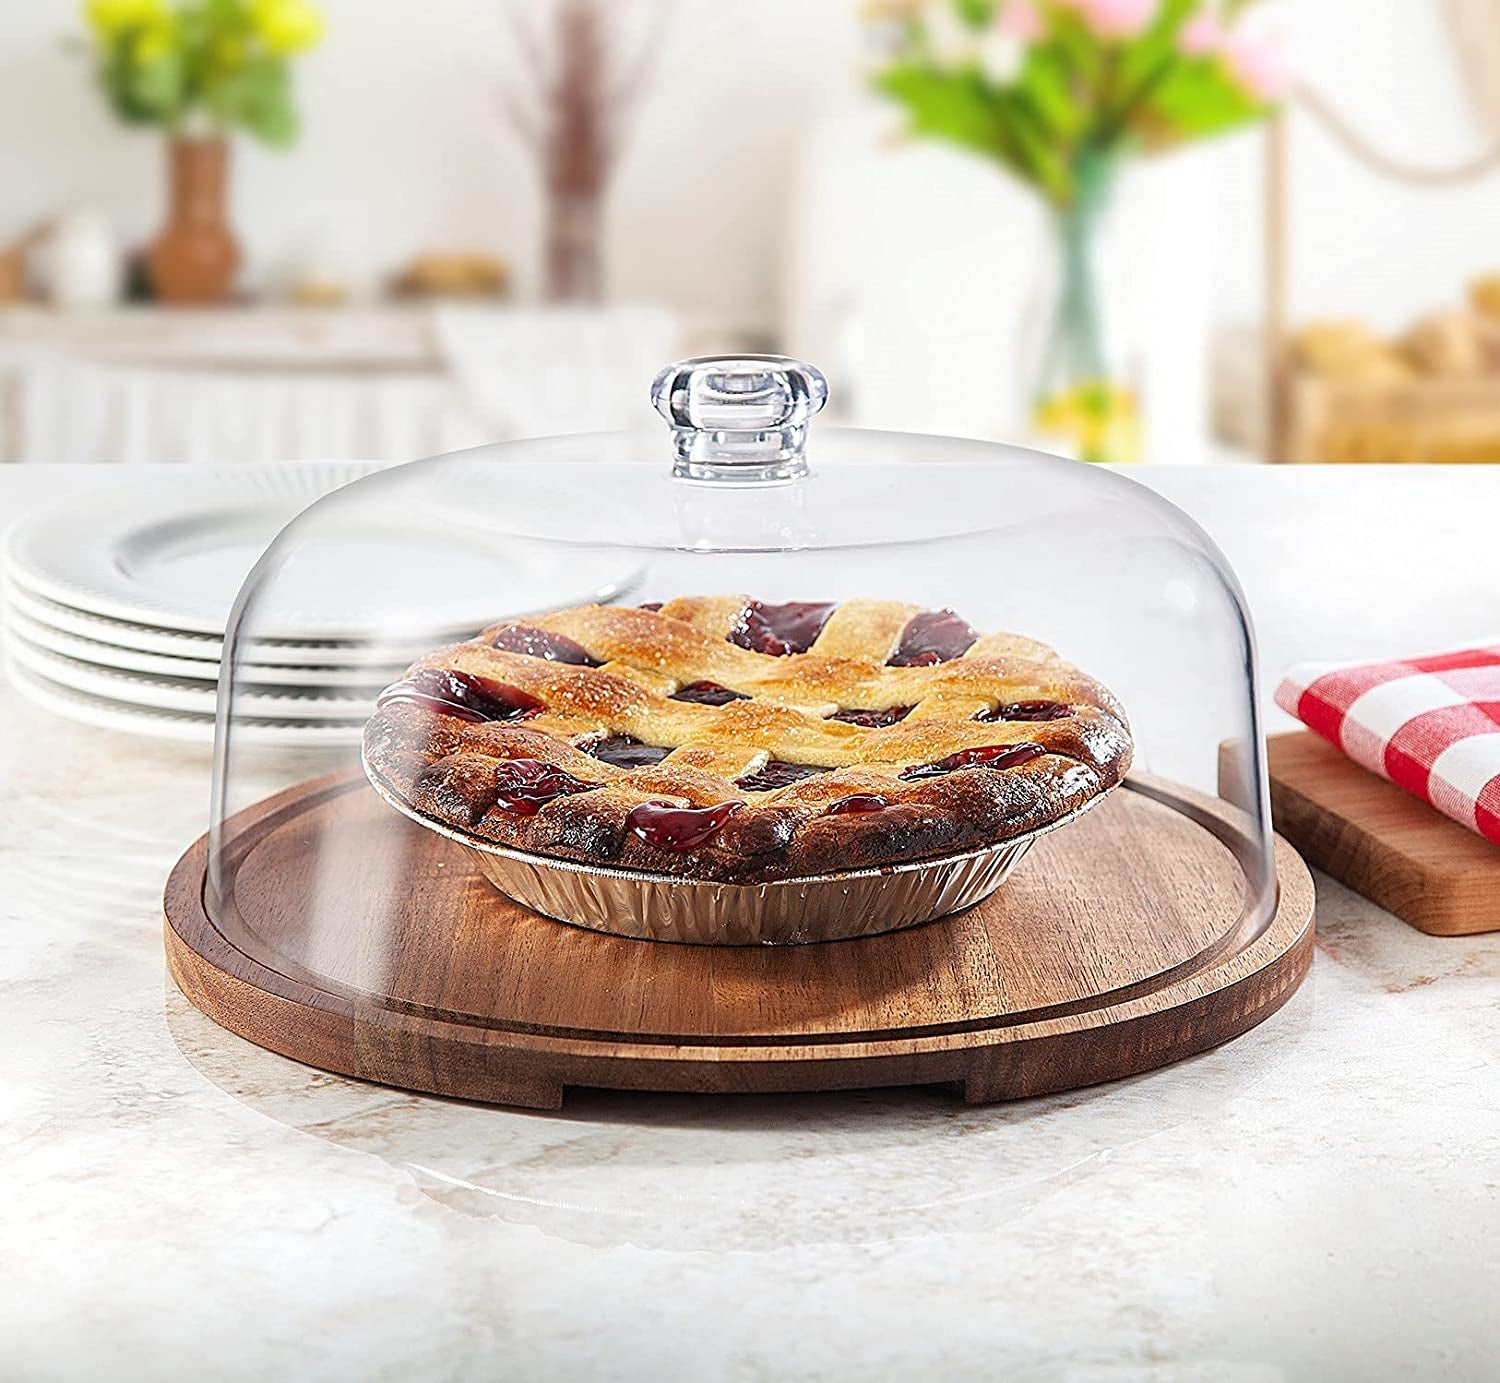 the glass and wood stand with a pie underneath